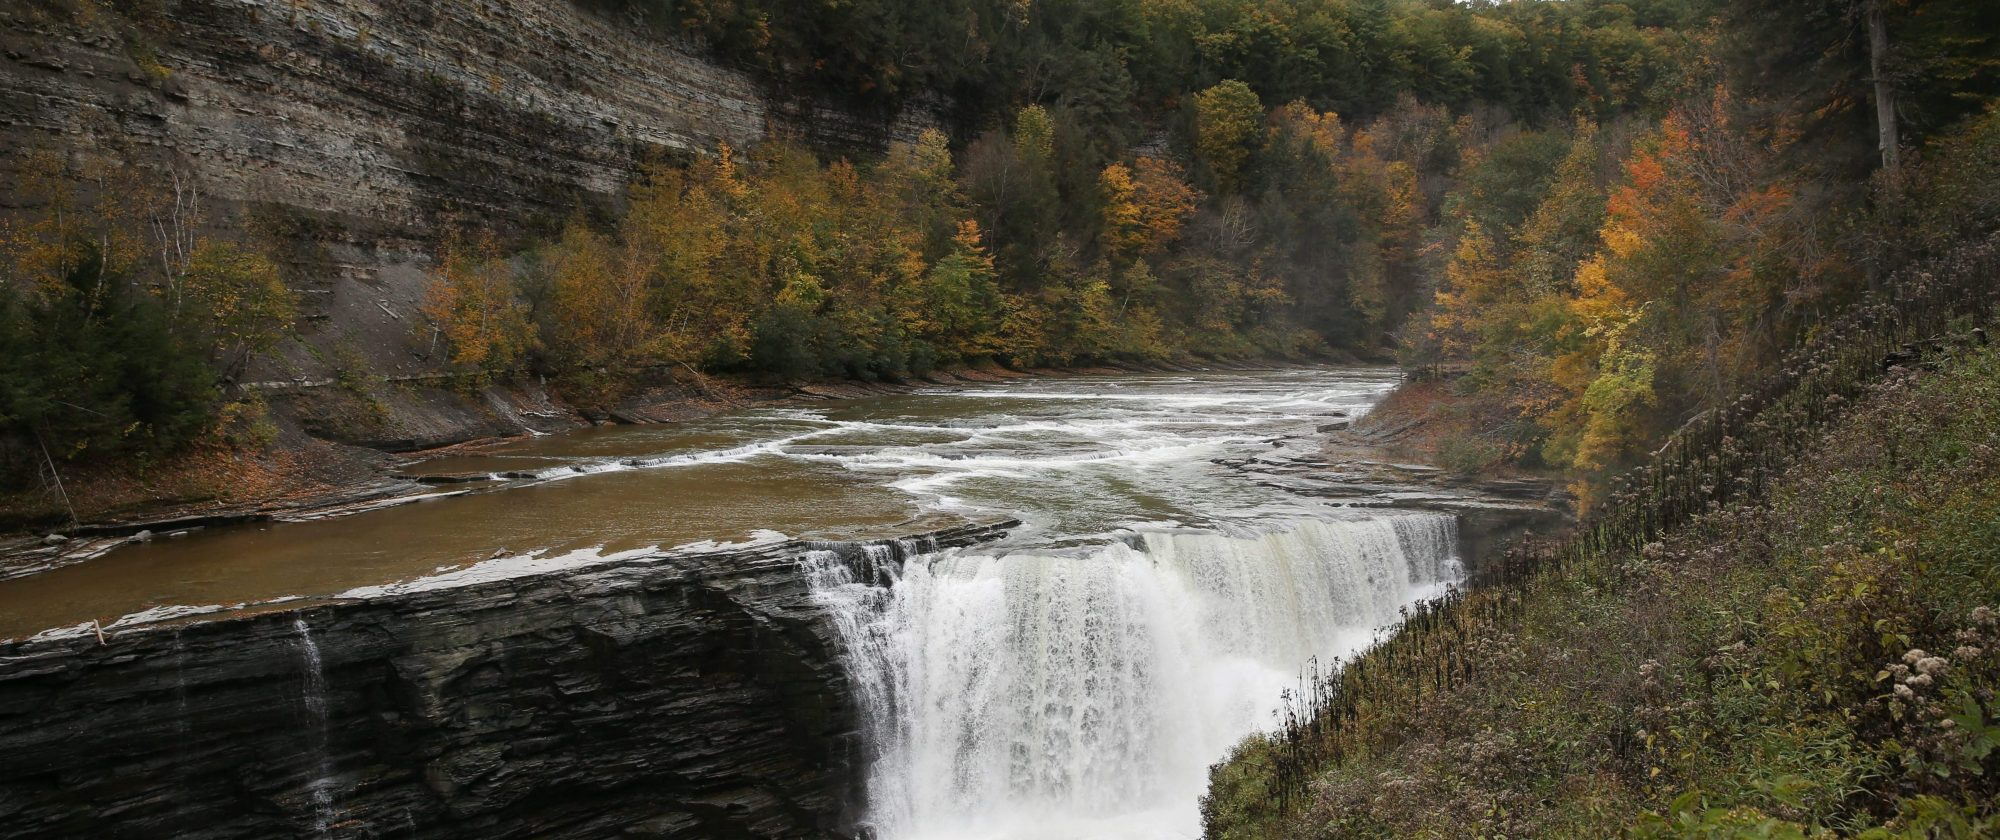 Letchworth State Park is a popular destination to view fall foliage. (Sharon Cantillon/News file photo)